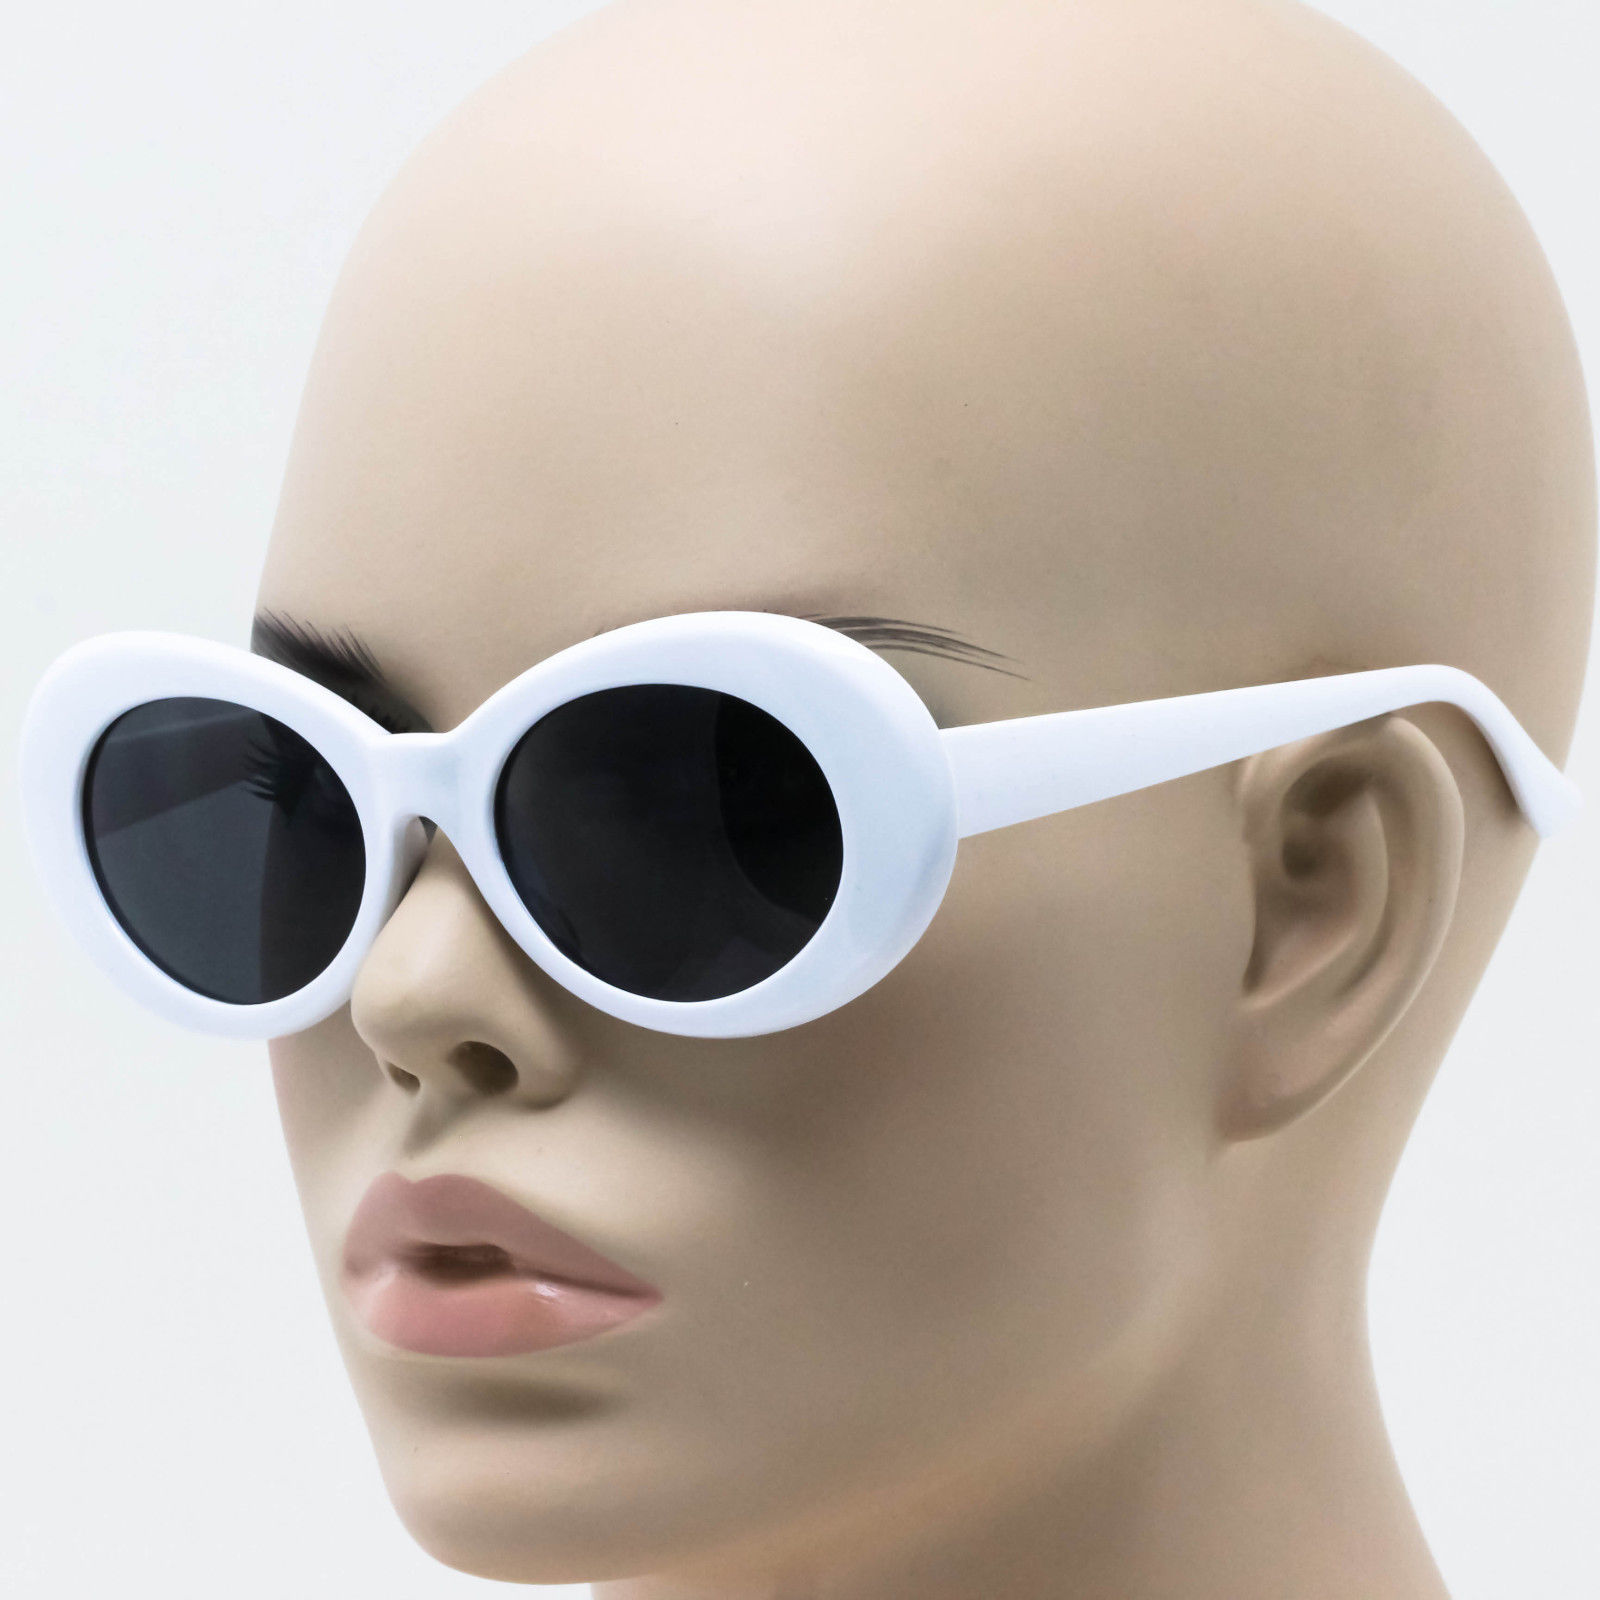 577b264cefe Clout Goggles Clout Rapper Hypebeast Cool Oval Migos Yachty Glasses Kurt  Cobain - Walmart.com